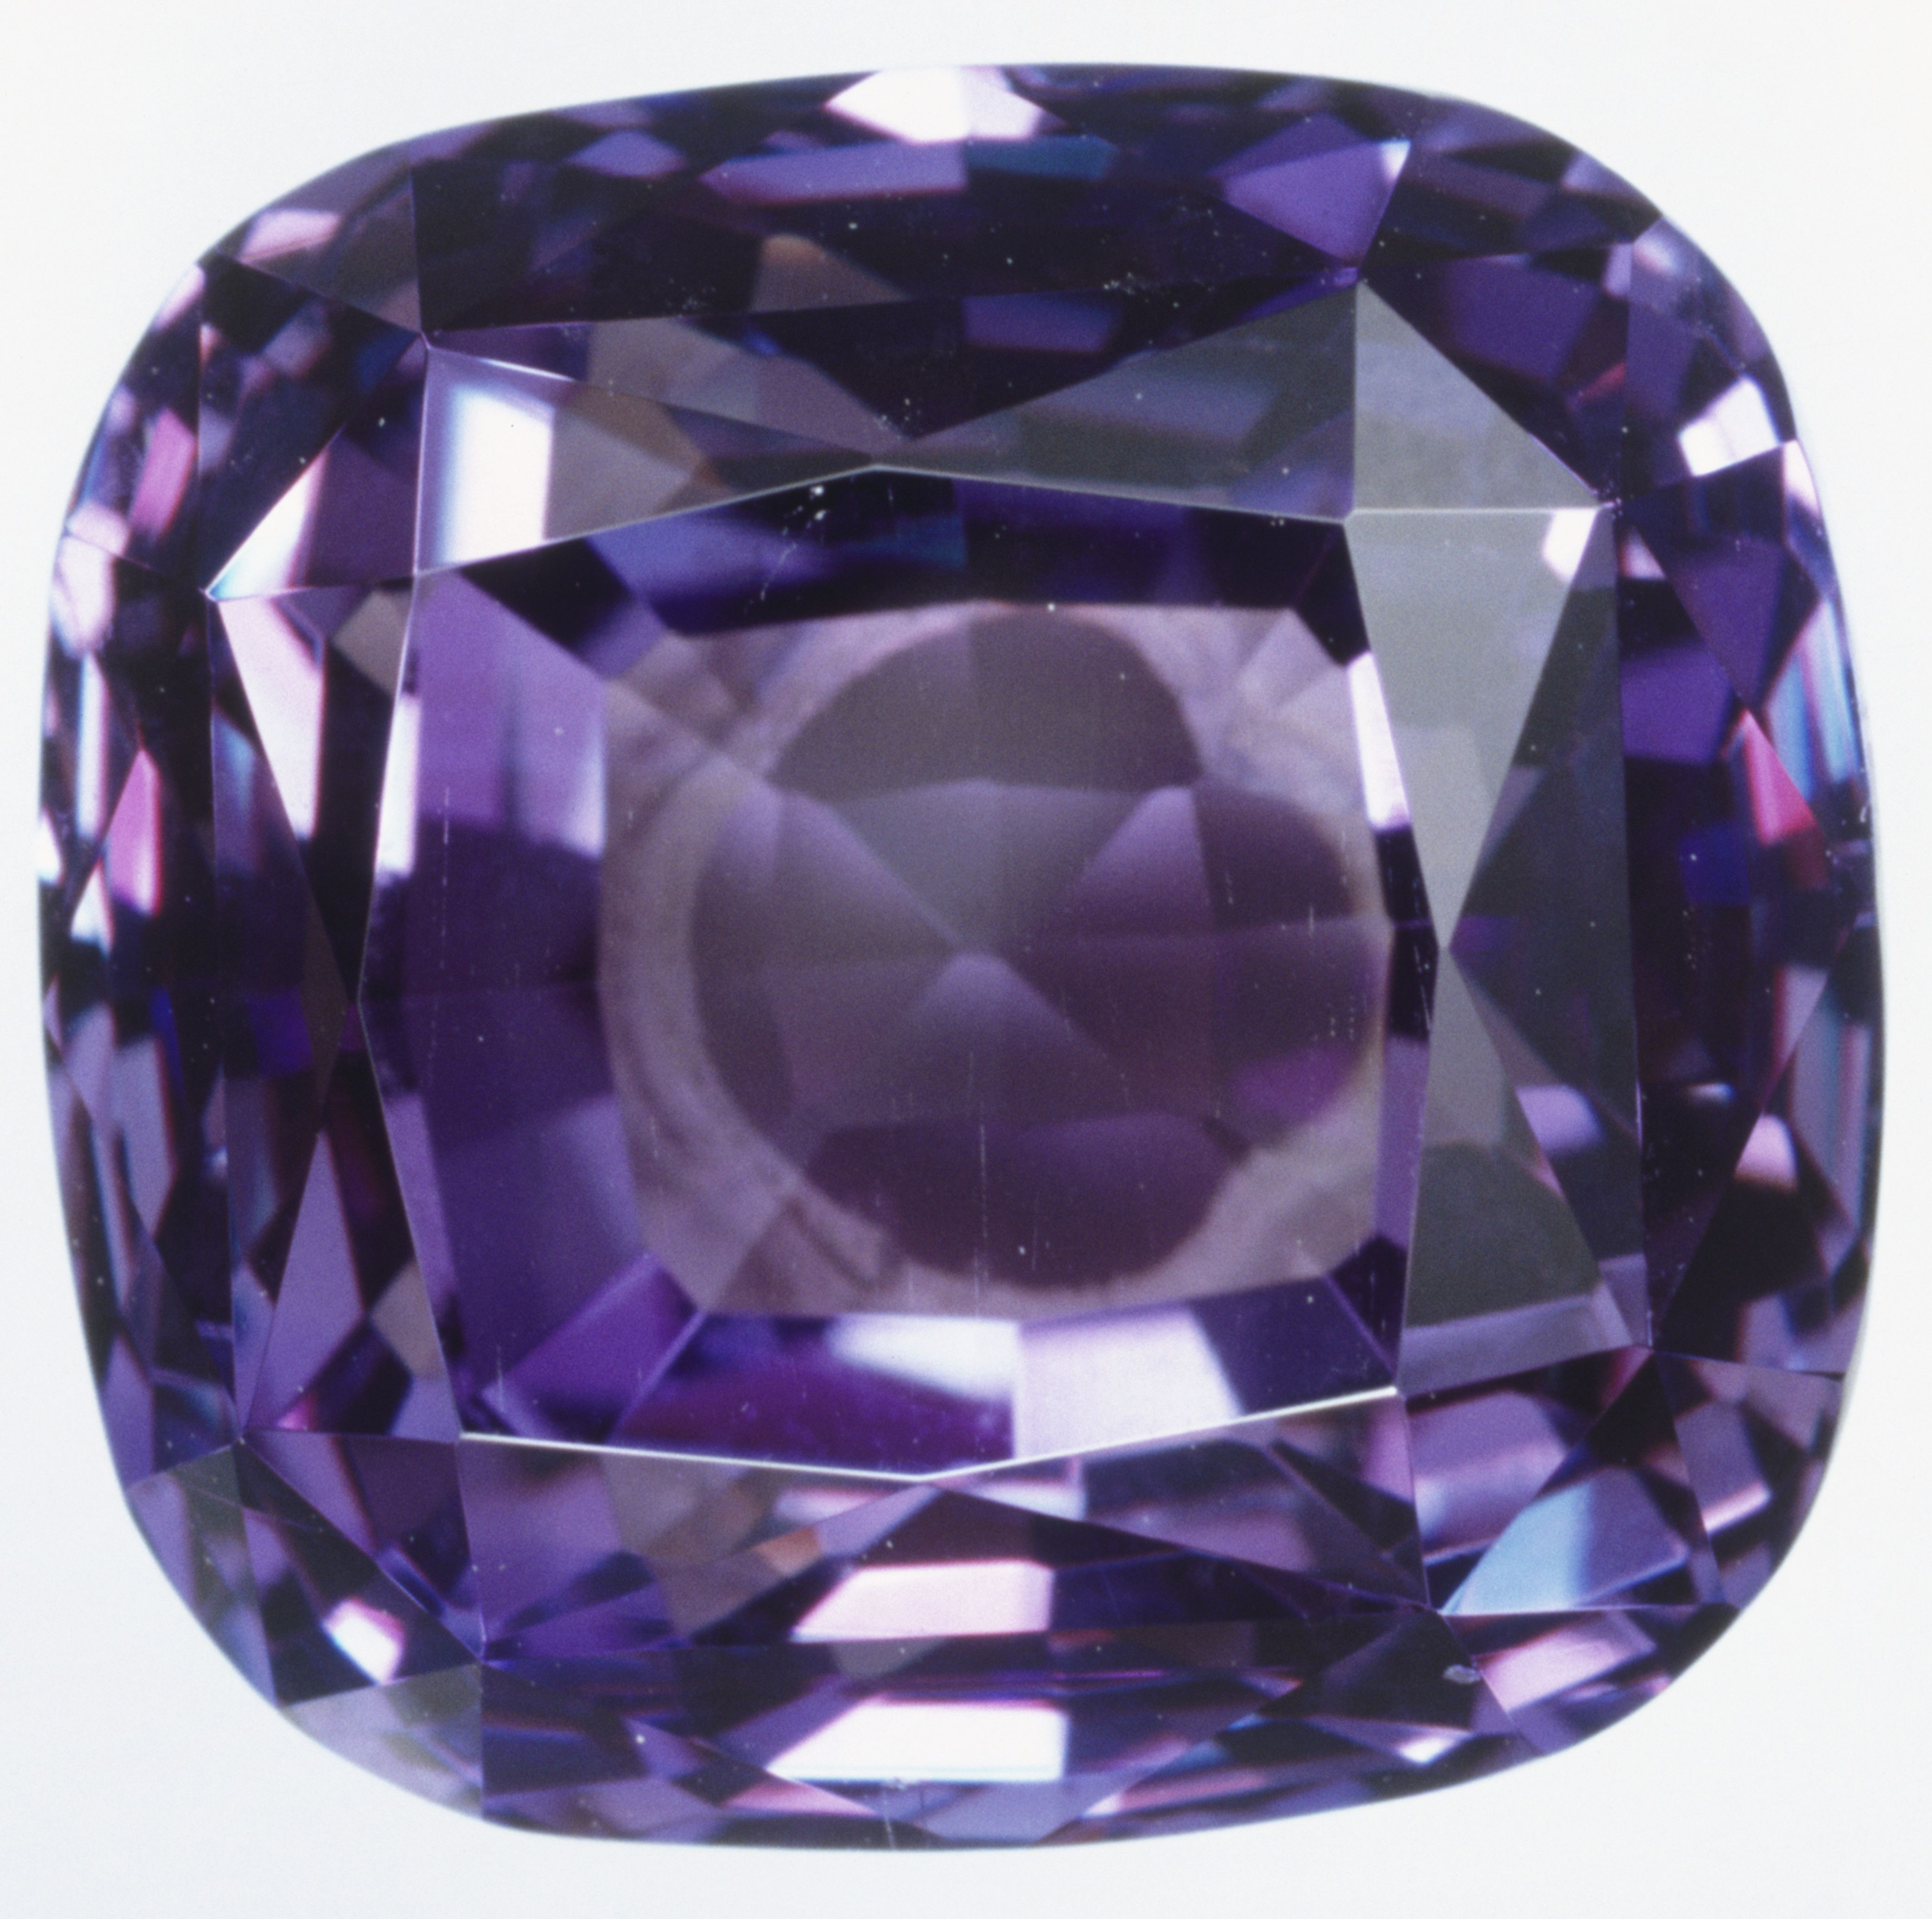 colour natural cts color vs zambian top unheated oval purple amethyst dark gemstone